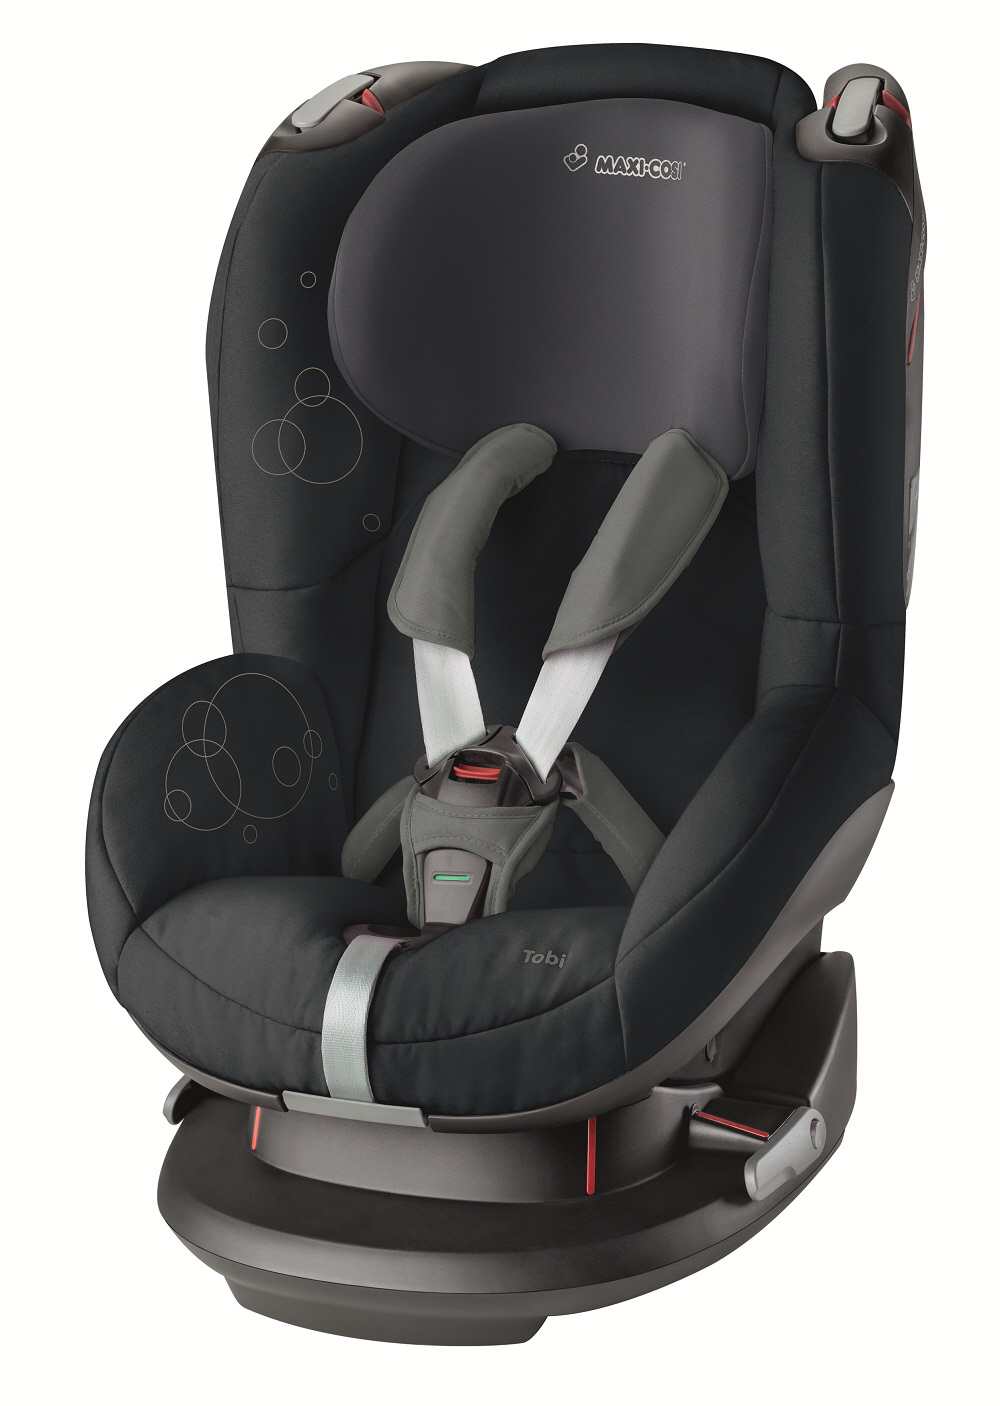 maxi cosi kindersitz tobi 2012 2012 total black buy at. Black Bedroom Furniture Sets. Home Design Ideas